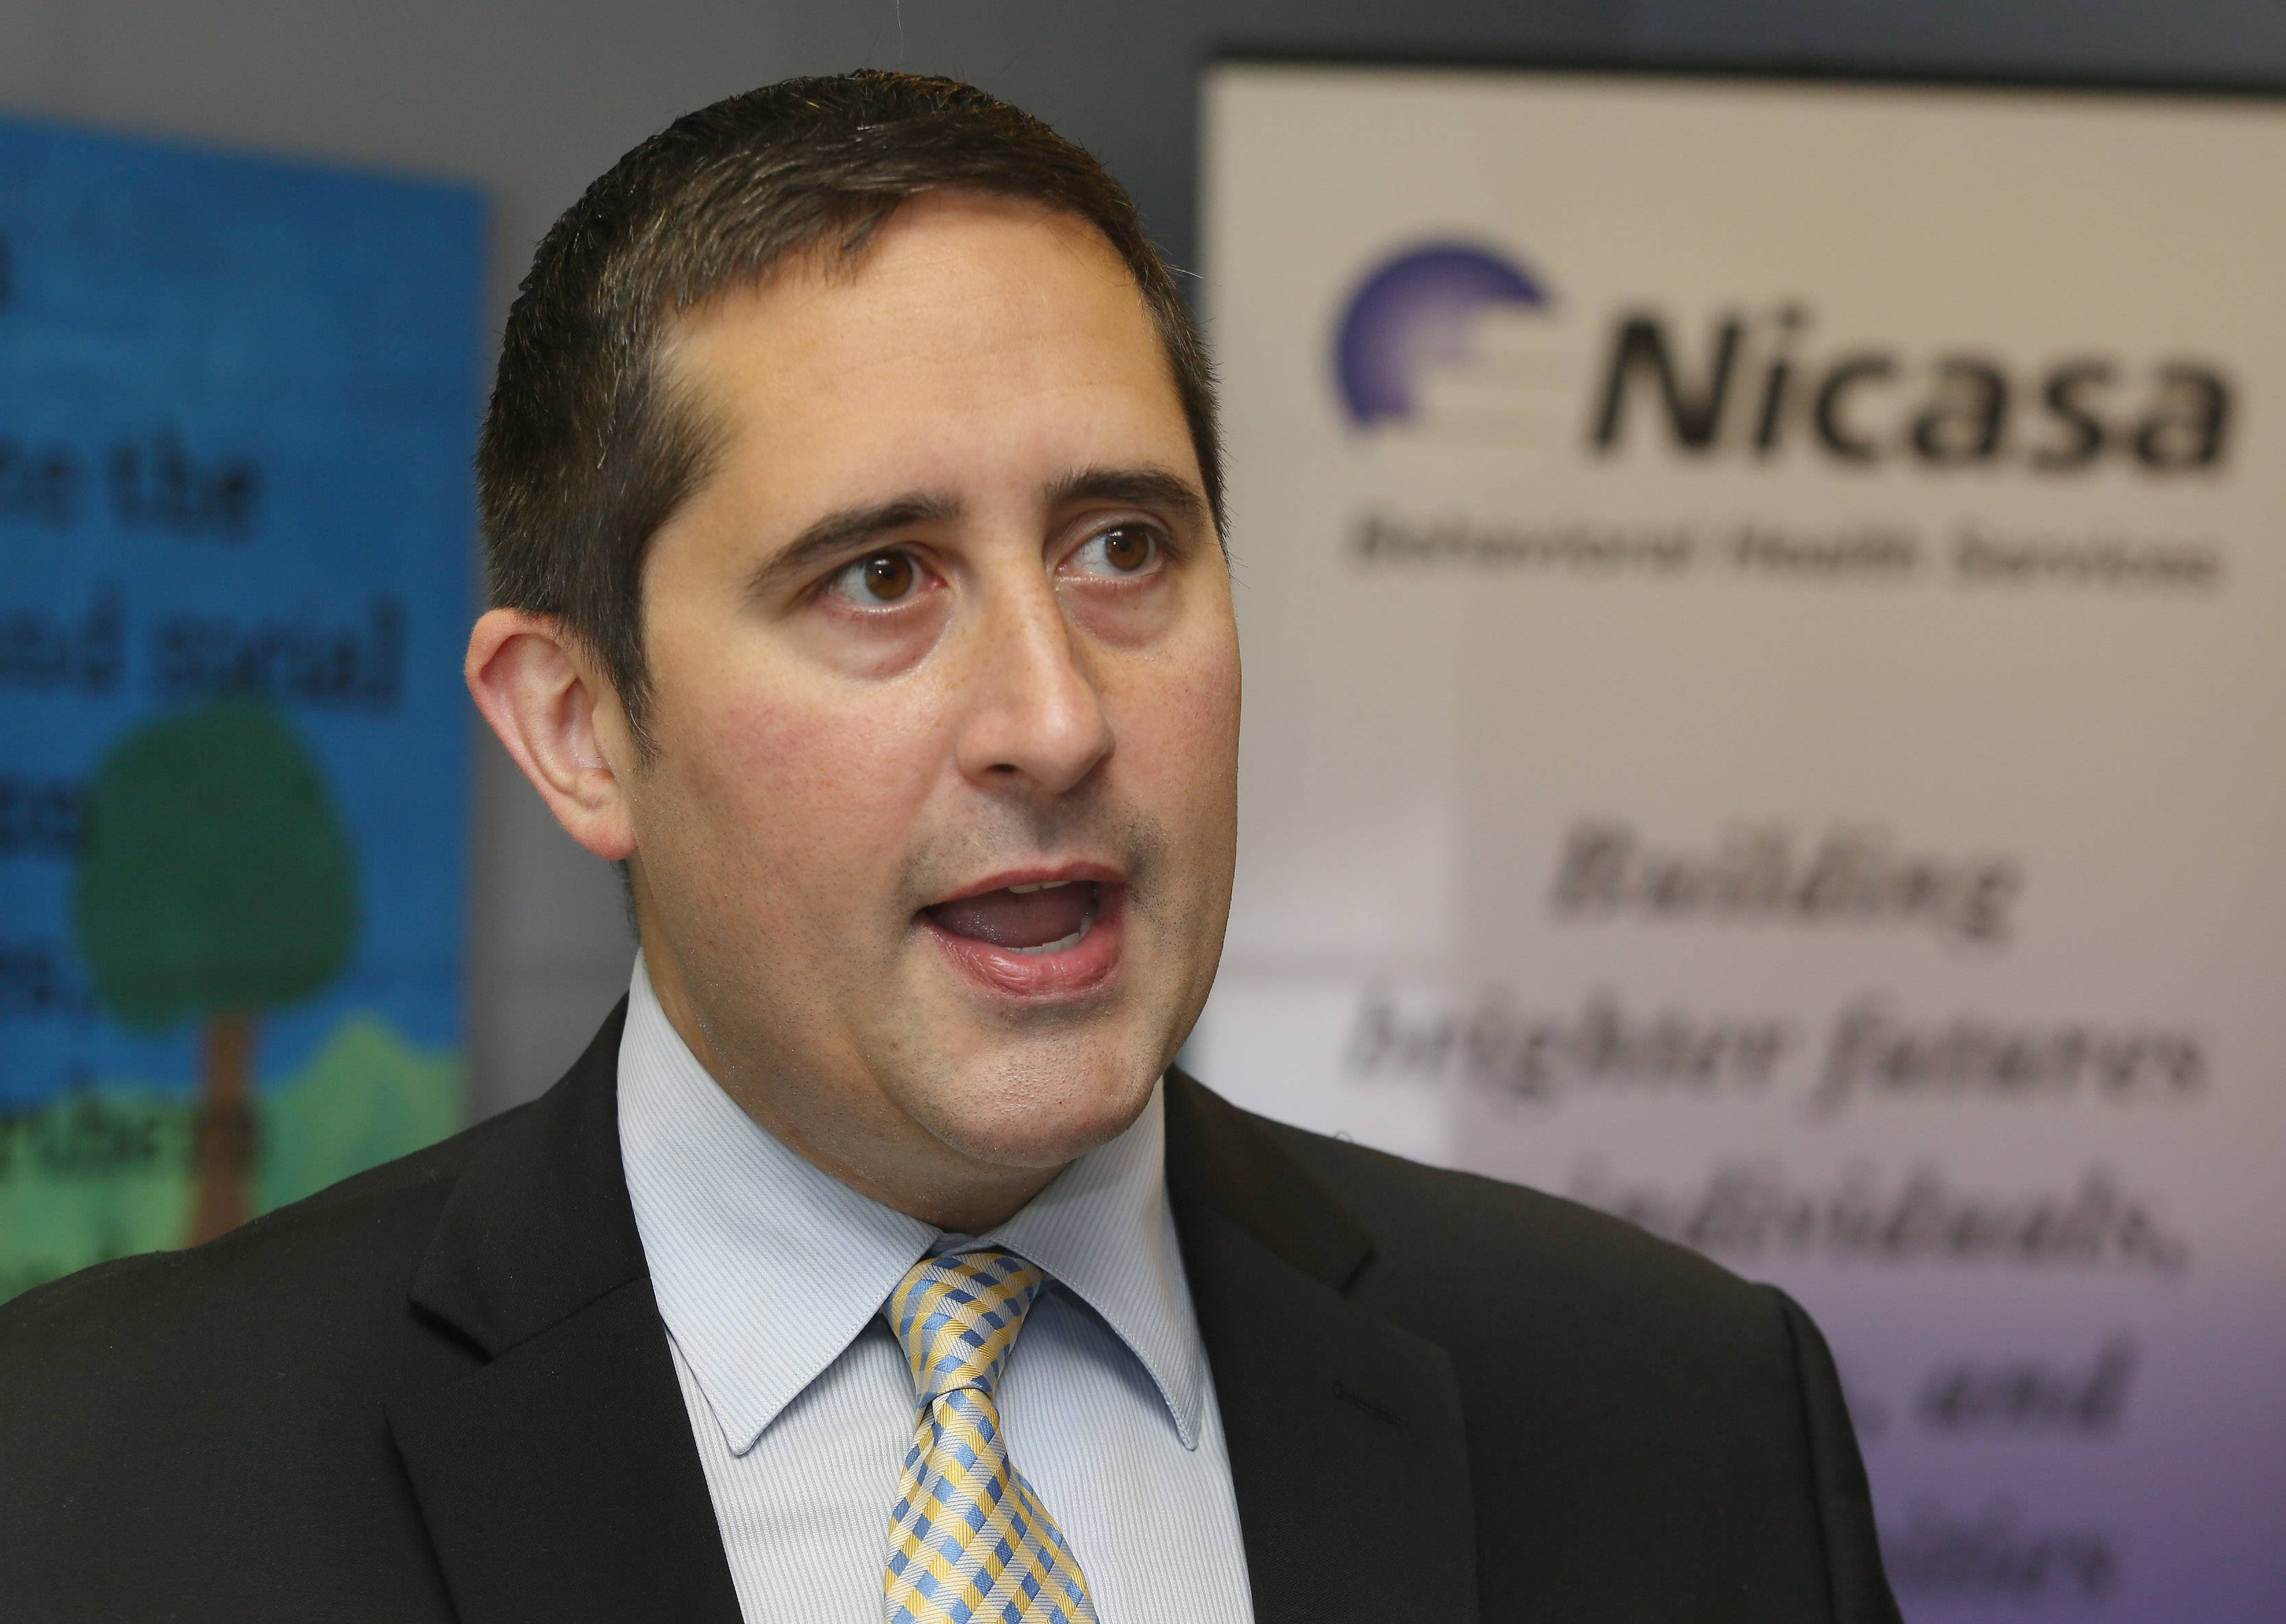 62nd District state Rep. Sam Yingling of Grayslake discusses the problem of heroin use in Illinois during a visit to Nicasa Behavioral Health Services in Round Lake. Yingling is the chairman of the state legislature's heroin task force.